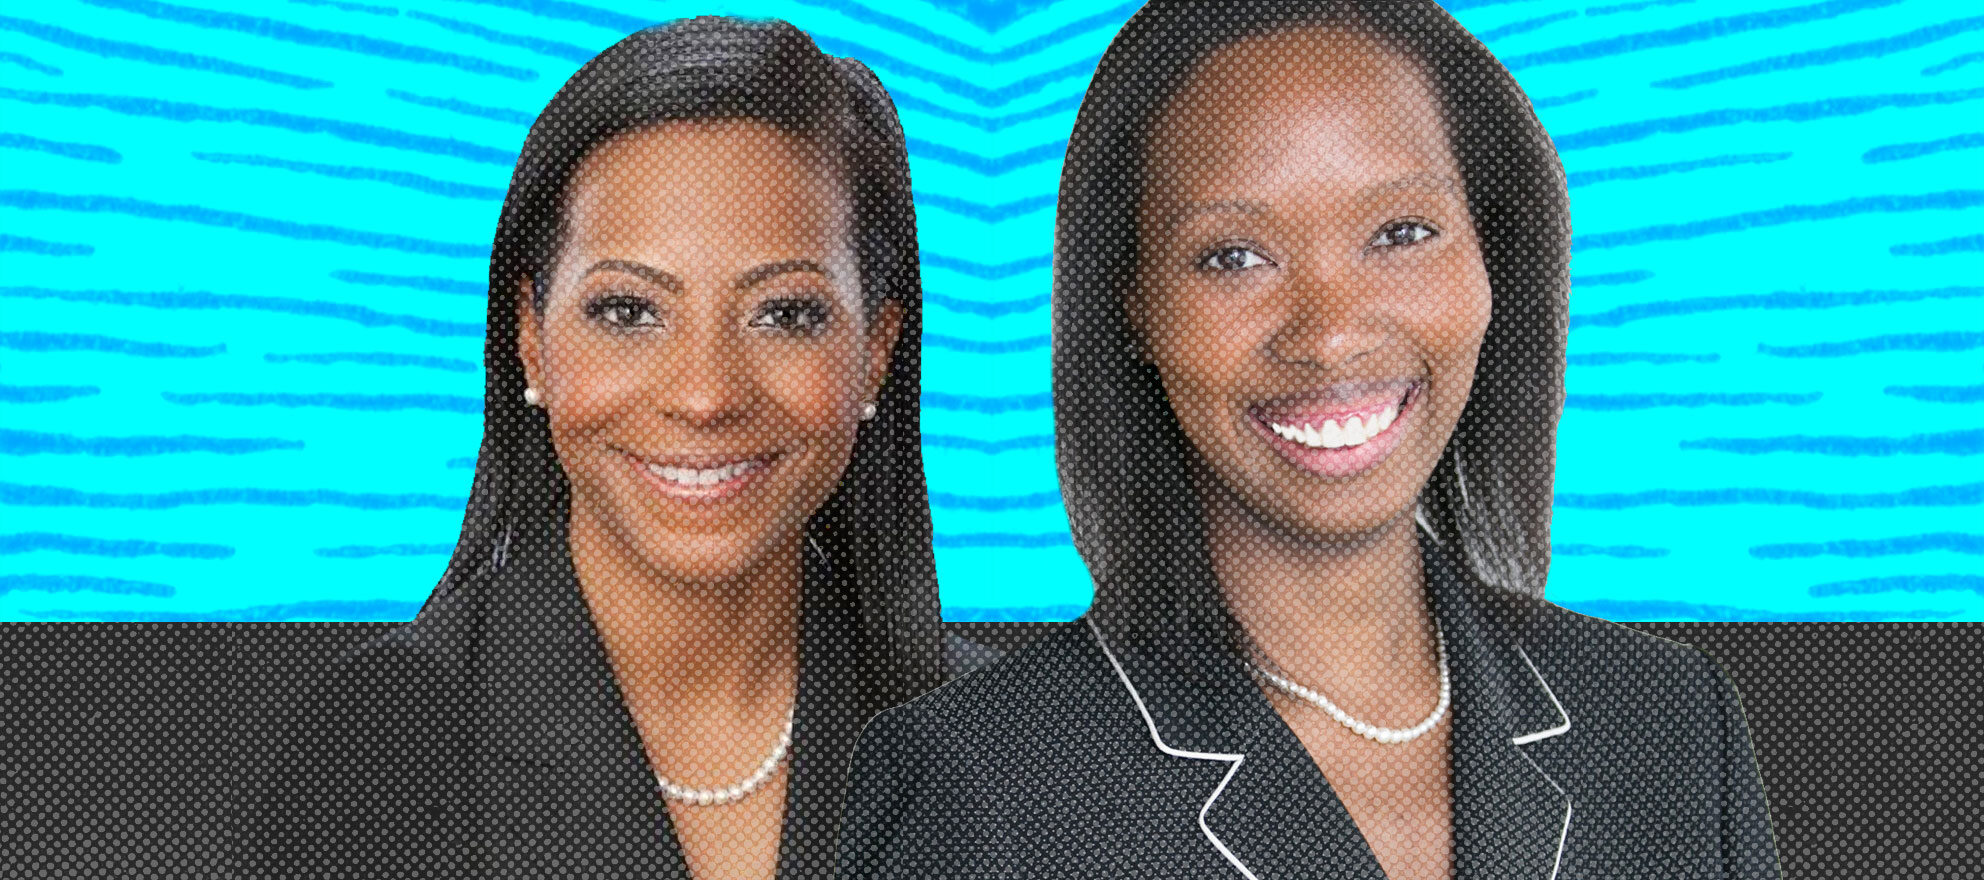 Against the grain: 2 female leaders shaking up the industry